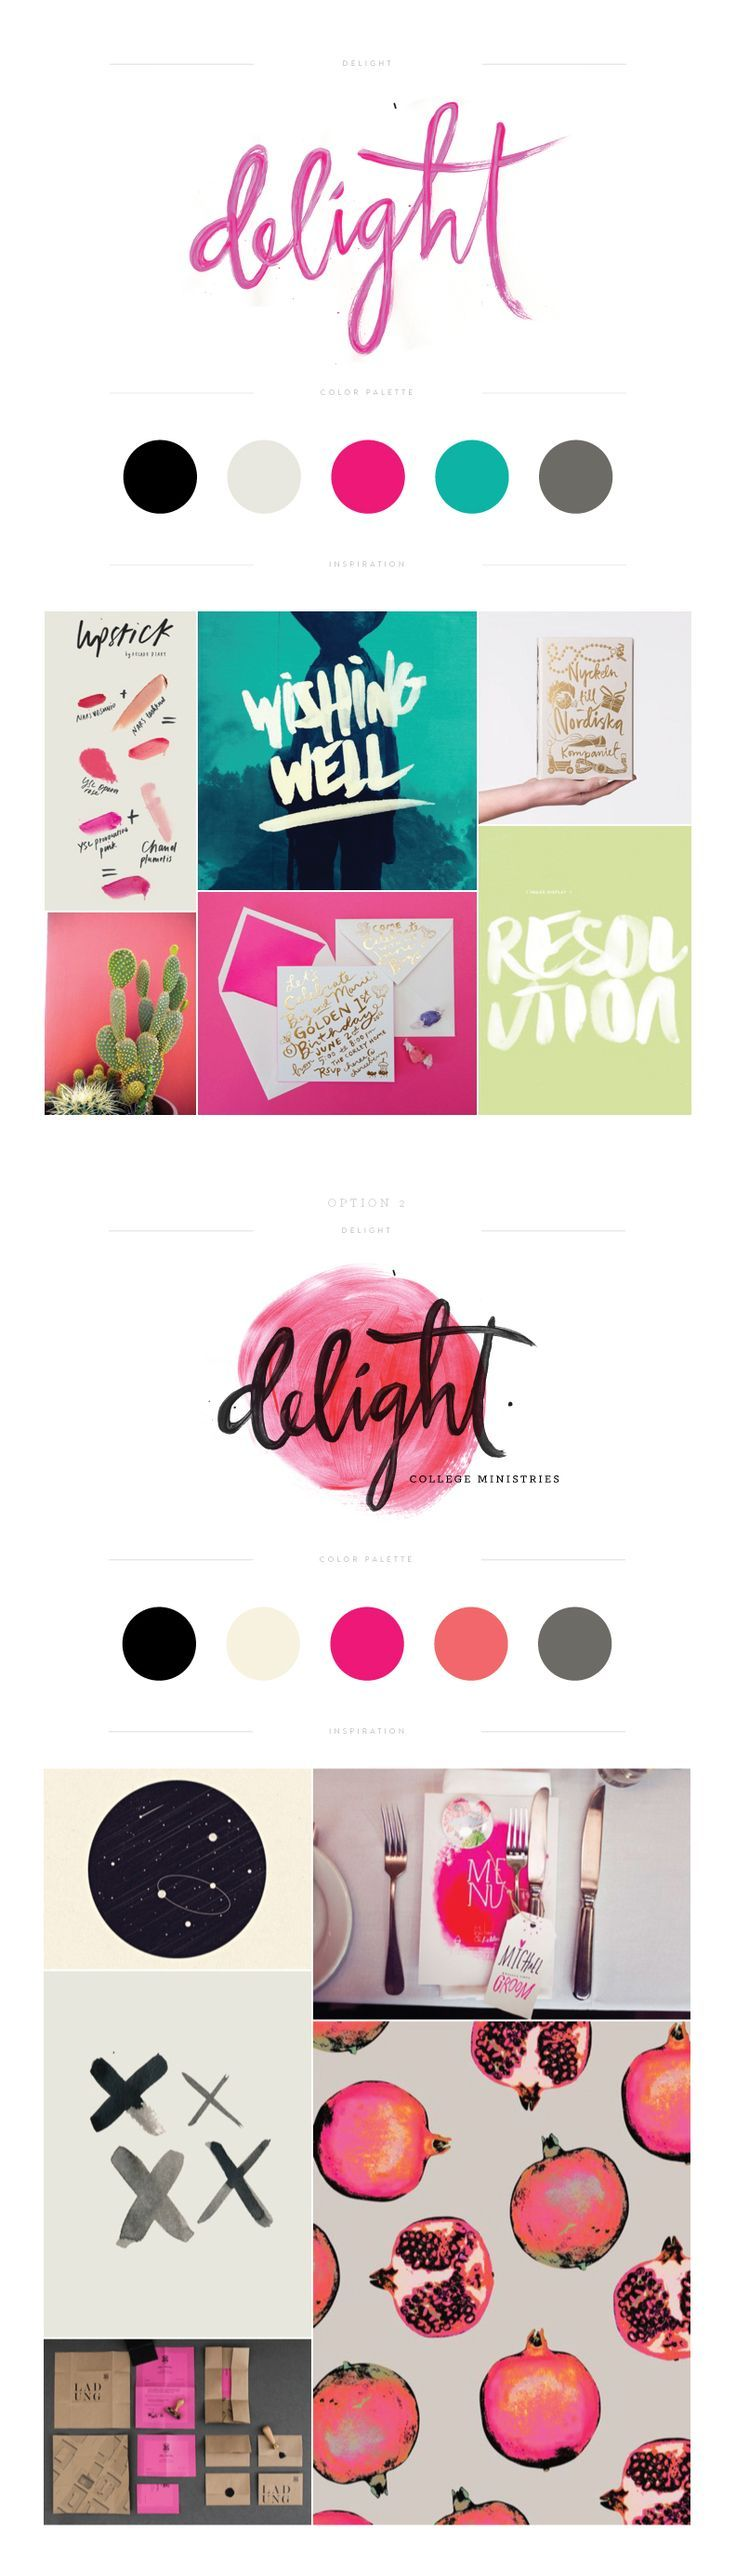 I really like the font and design of this it's very youthful which would appeal to the students that the brand would be aimed at however the colour scheme may be too feminine for my design.